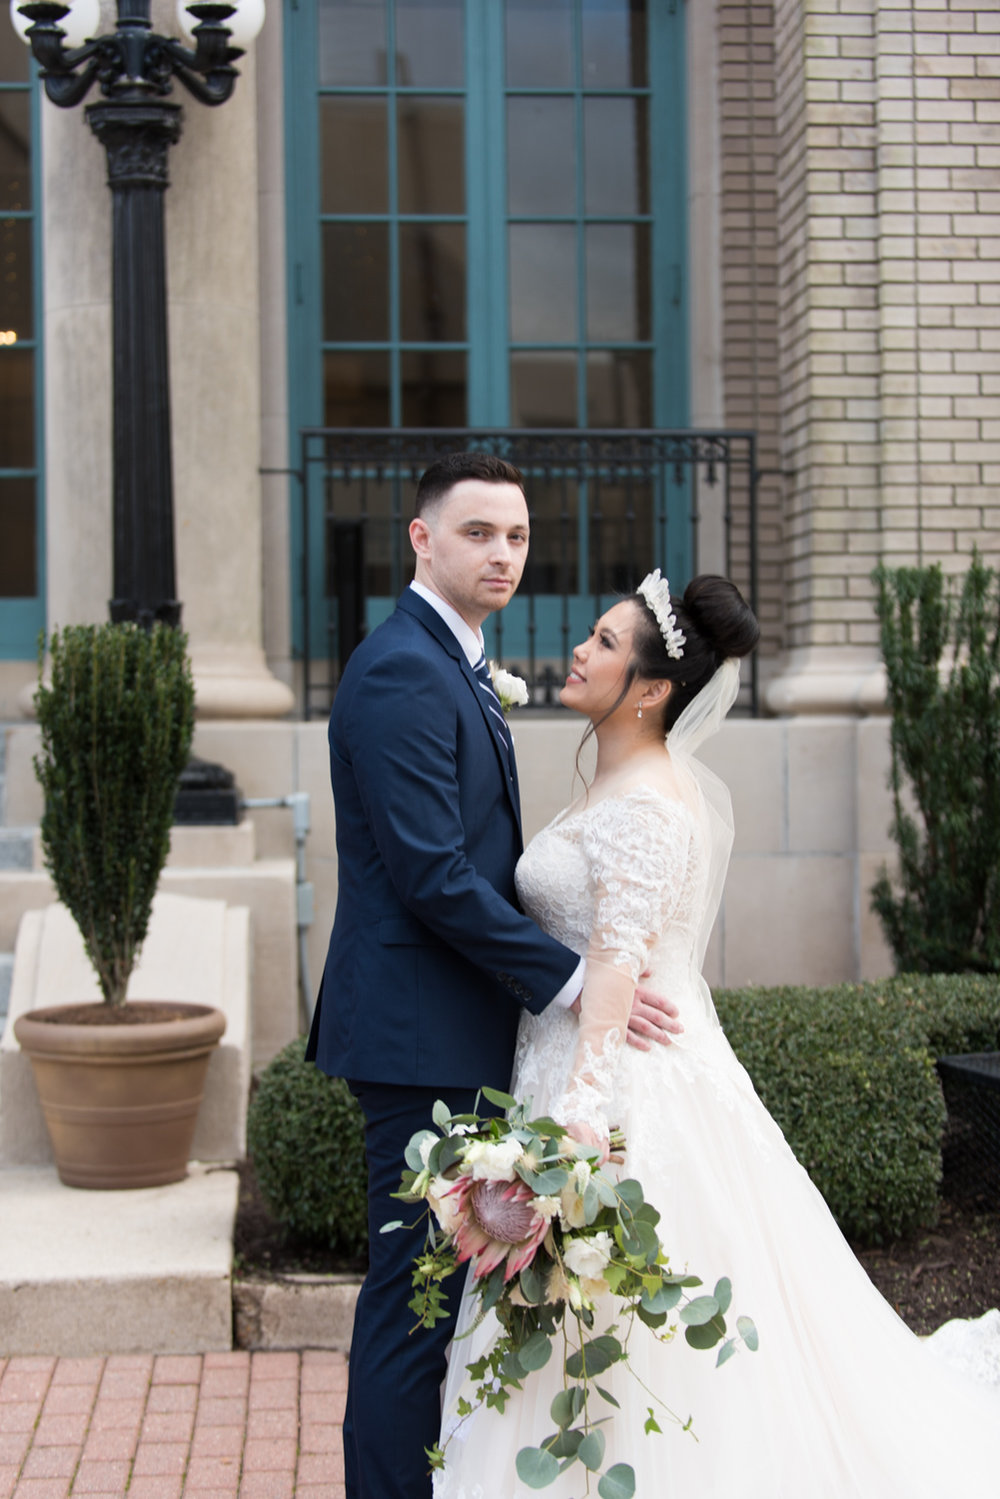 Rose Gold Wedding at Historic Post Office Virginia Harry Potter Themed Wedding-154.JPG